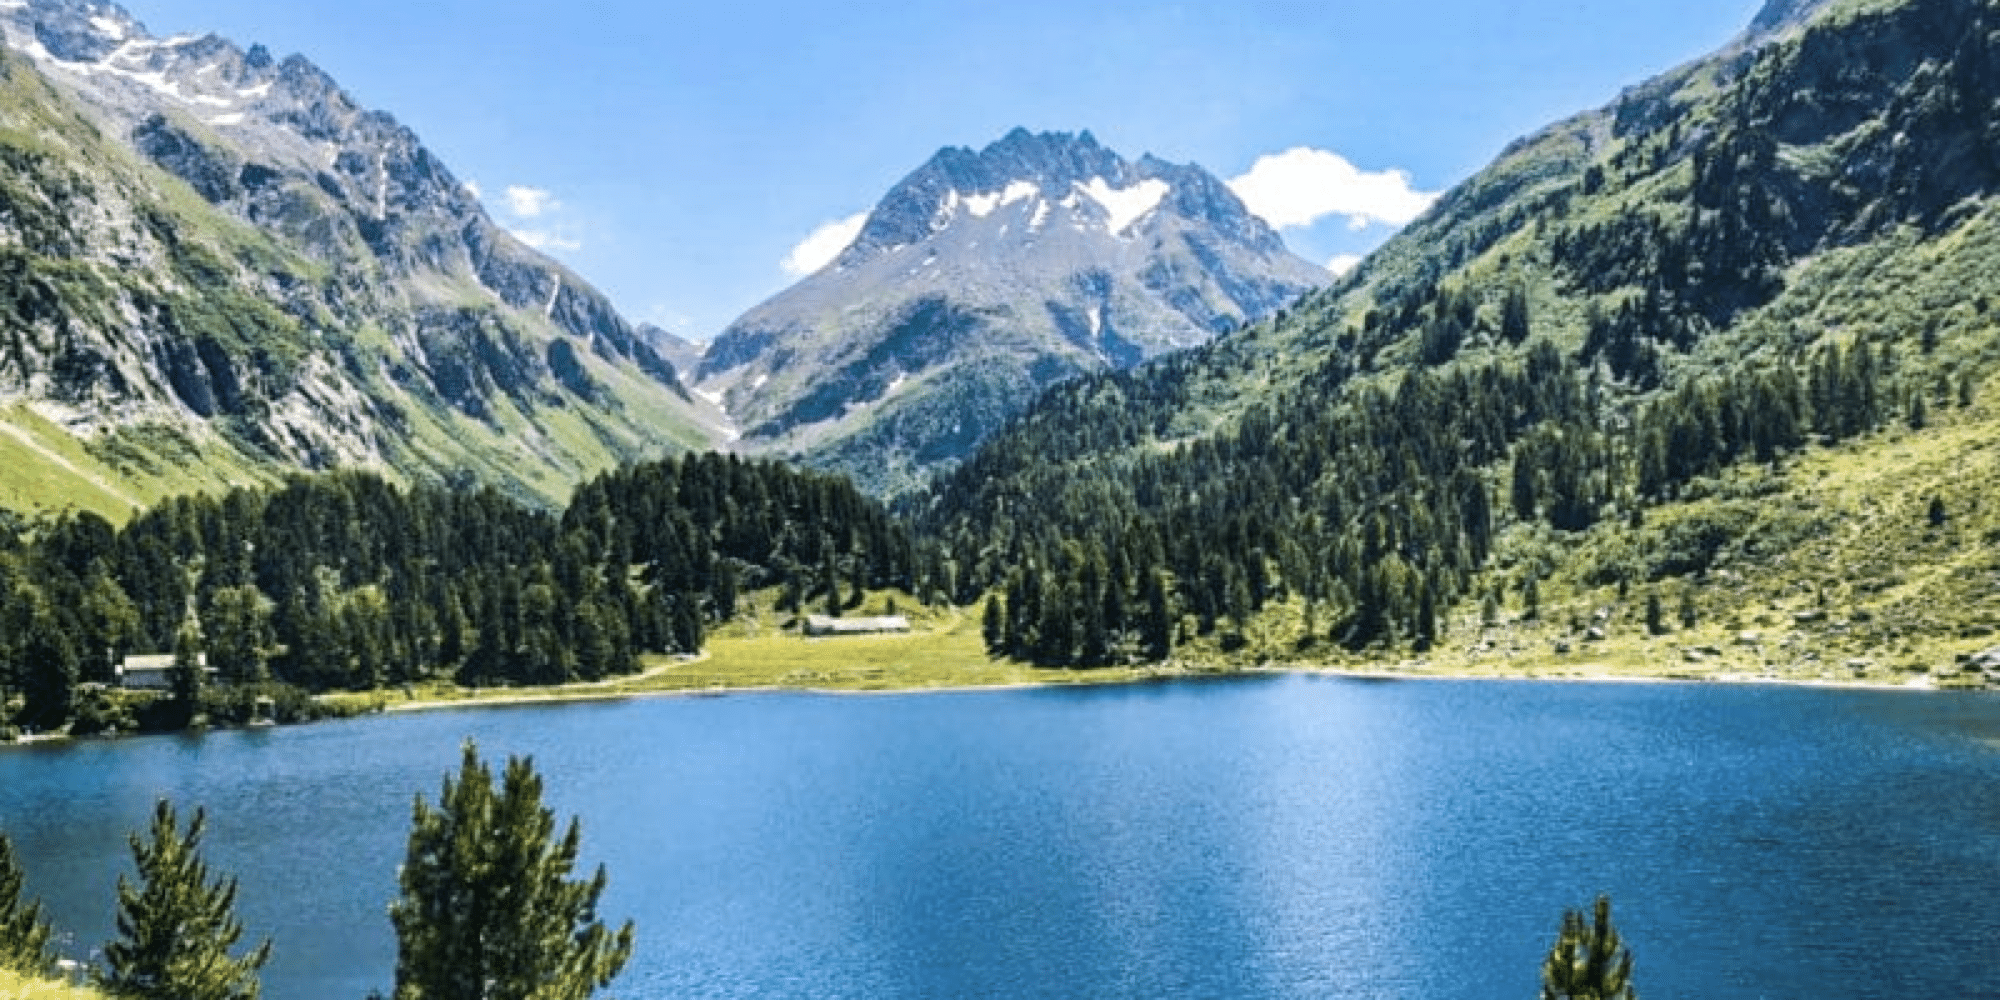 Alpine lake view in Switzerland